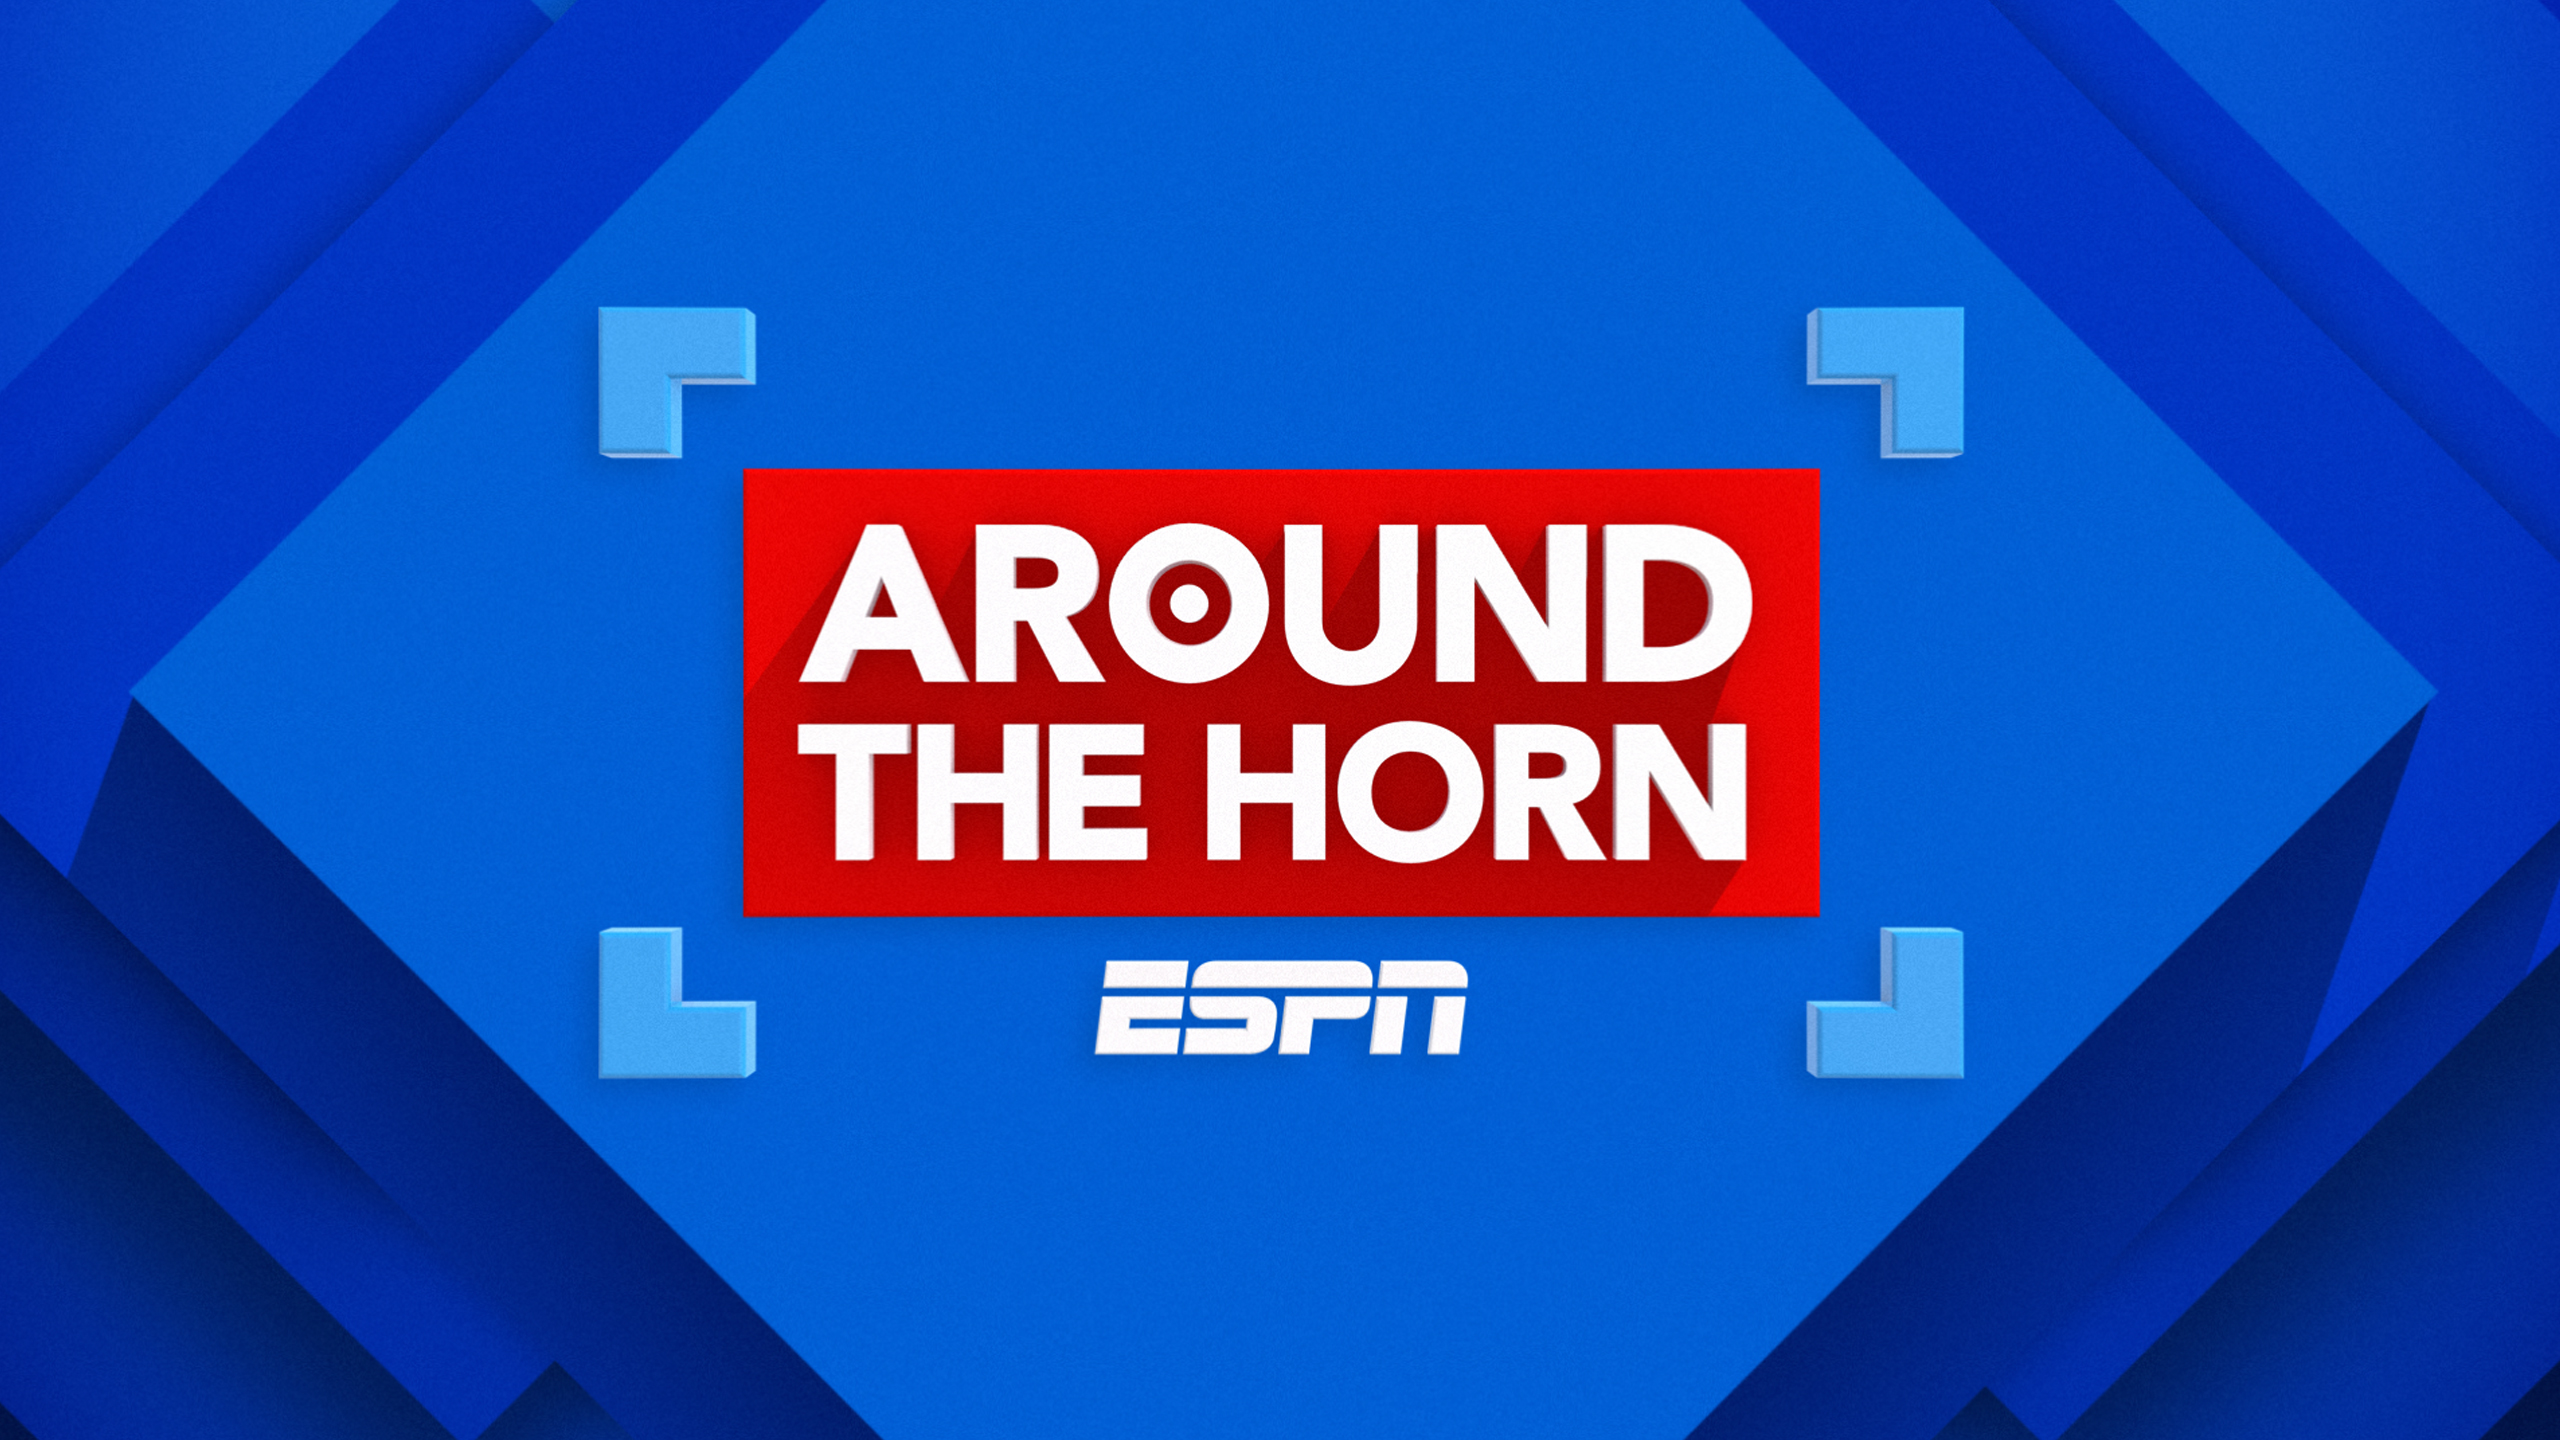 Thu, 12/13 - Around The Horn